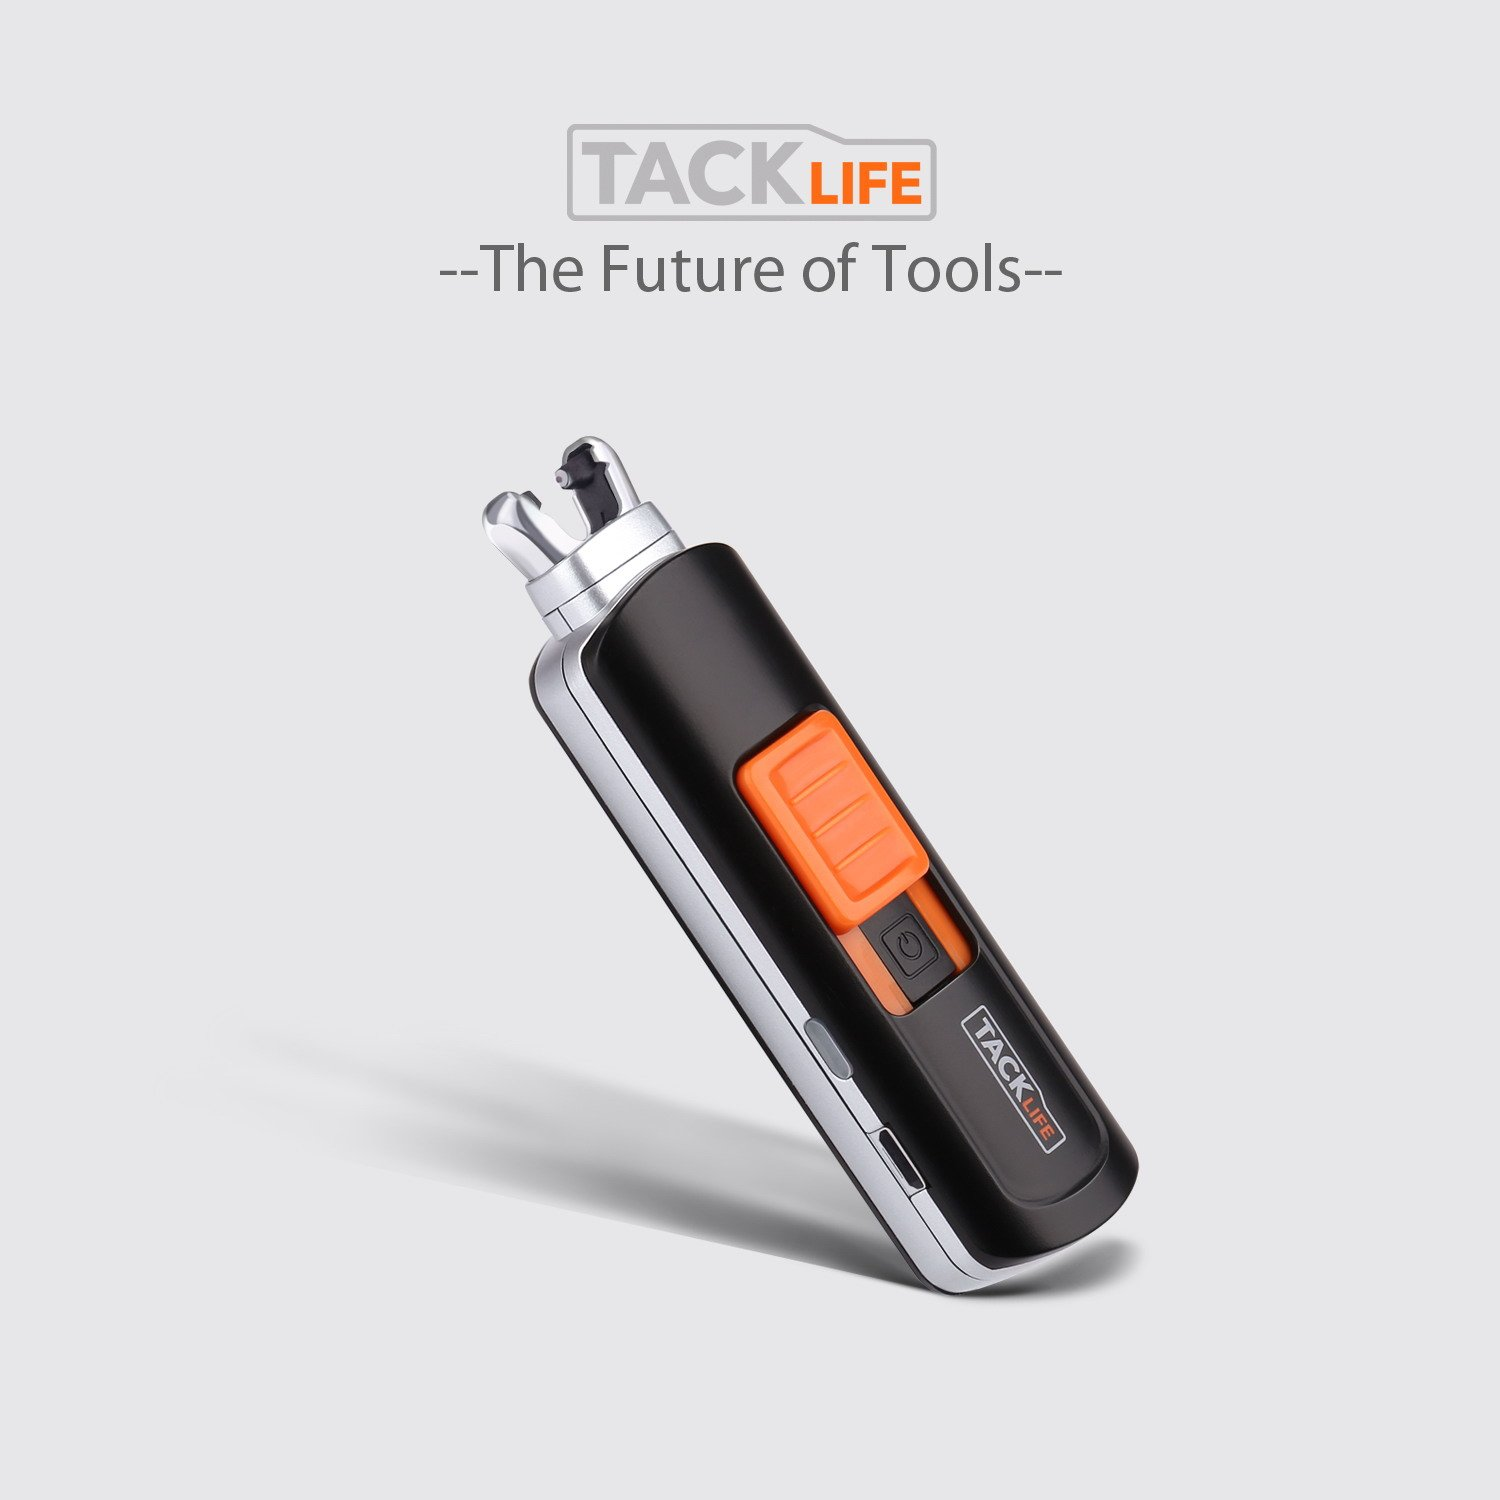 Lighter, Tacklife ELY03 Electric Arc Lighter, USB Rechargeable Electric Lighter with Li-Ion Battery 300 Times Spark for Per Charge, Windproof Pocket & Candle Lighter for Indoor and Outdoor by TACKLIFE (Image #9)